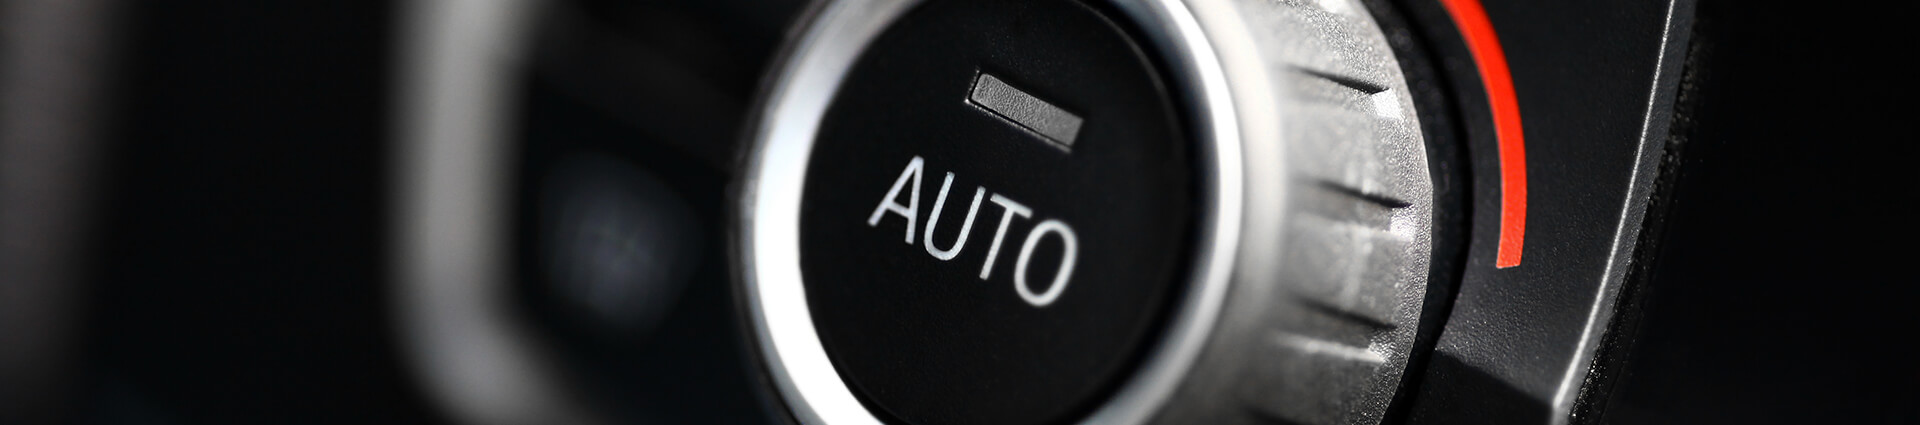 Car AC Repair and Service in Allen, TX Page Banner